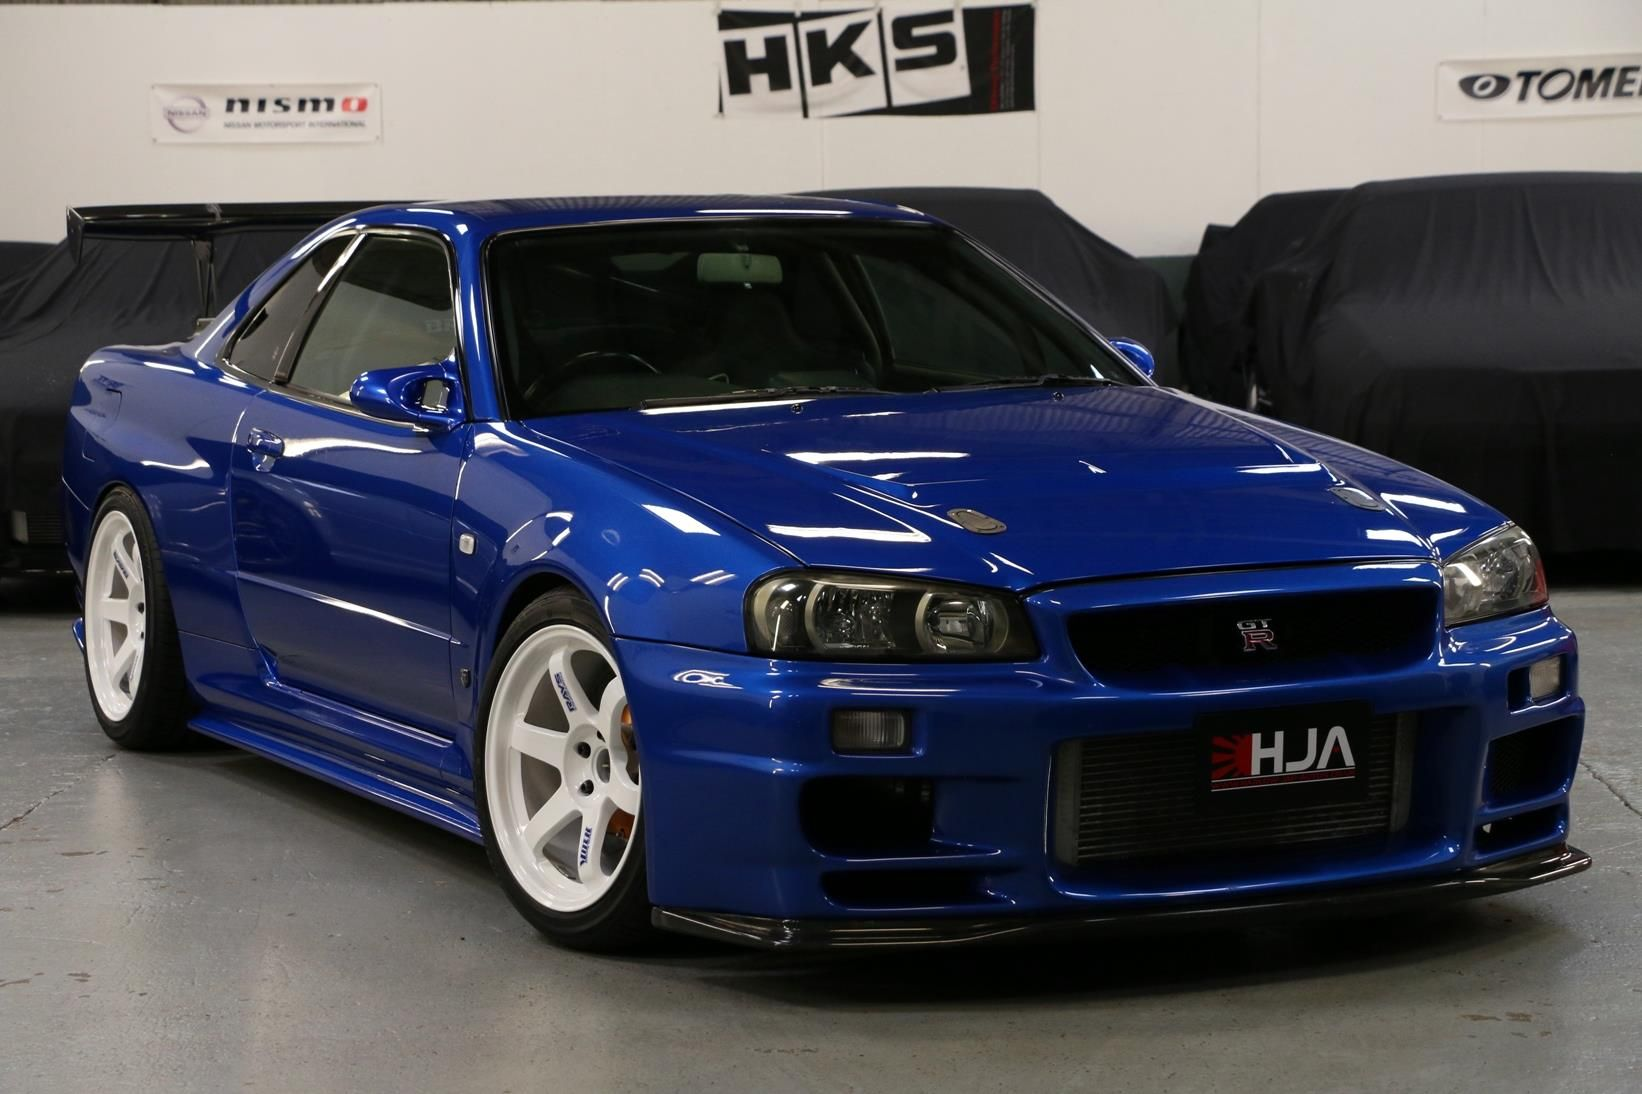 Skyline Gtr R34 Blue | Used 1999 Nissan Skyline R34 For Sale In Essex |  Pistonheads